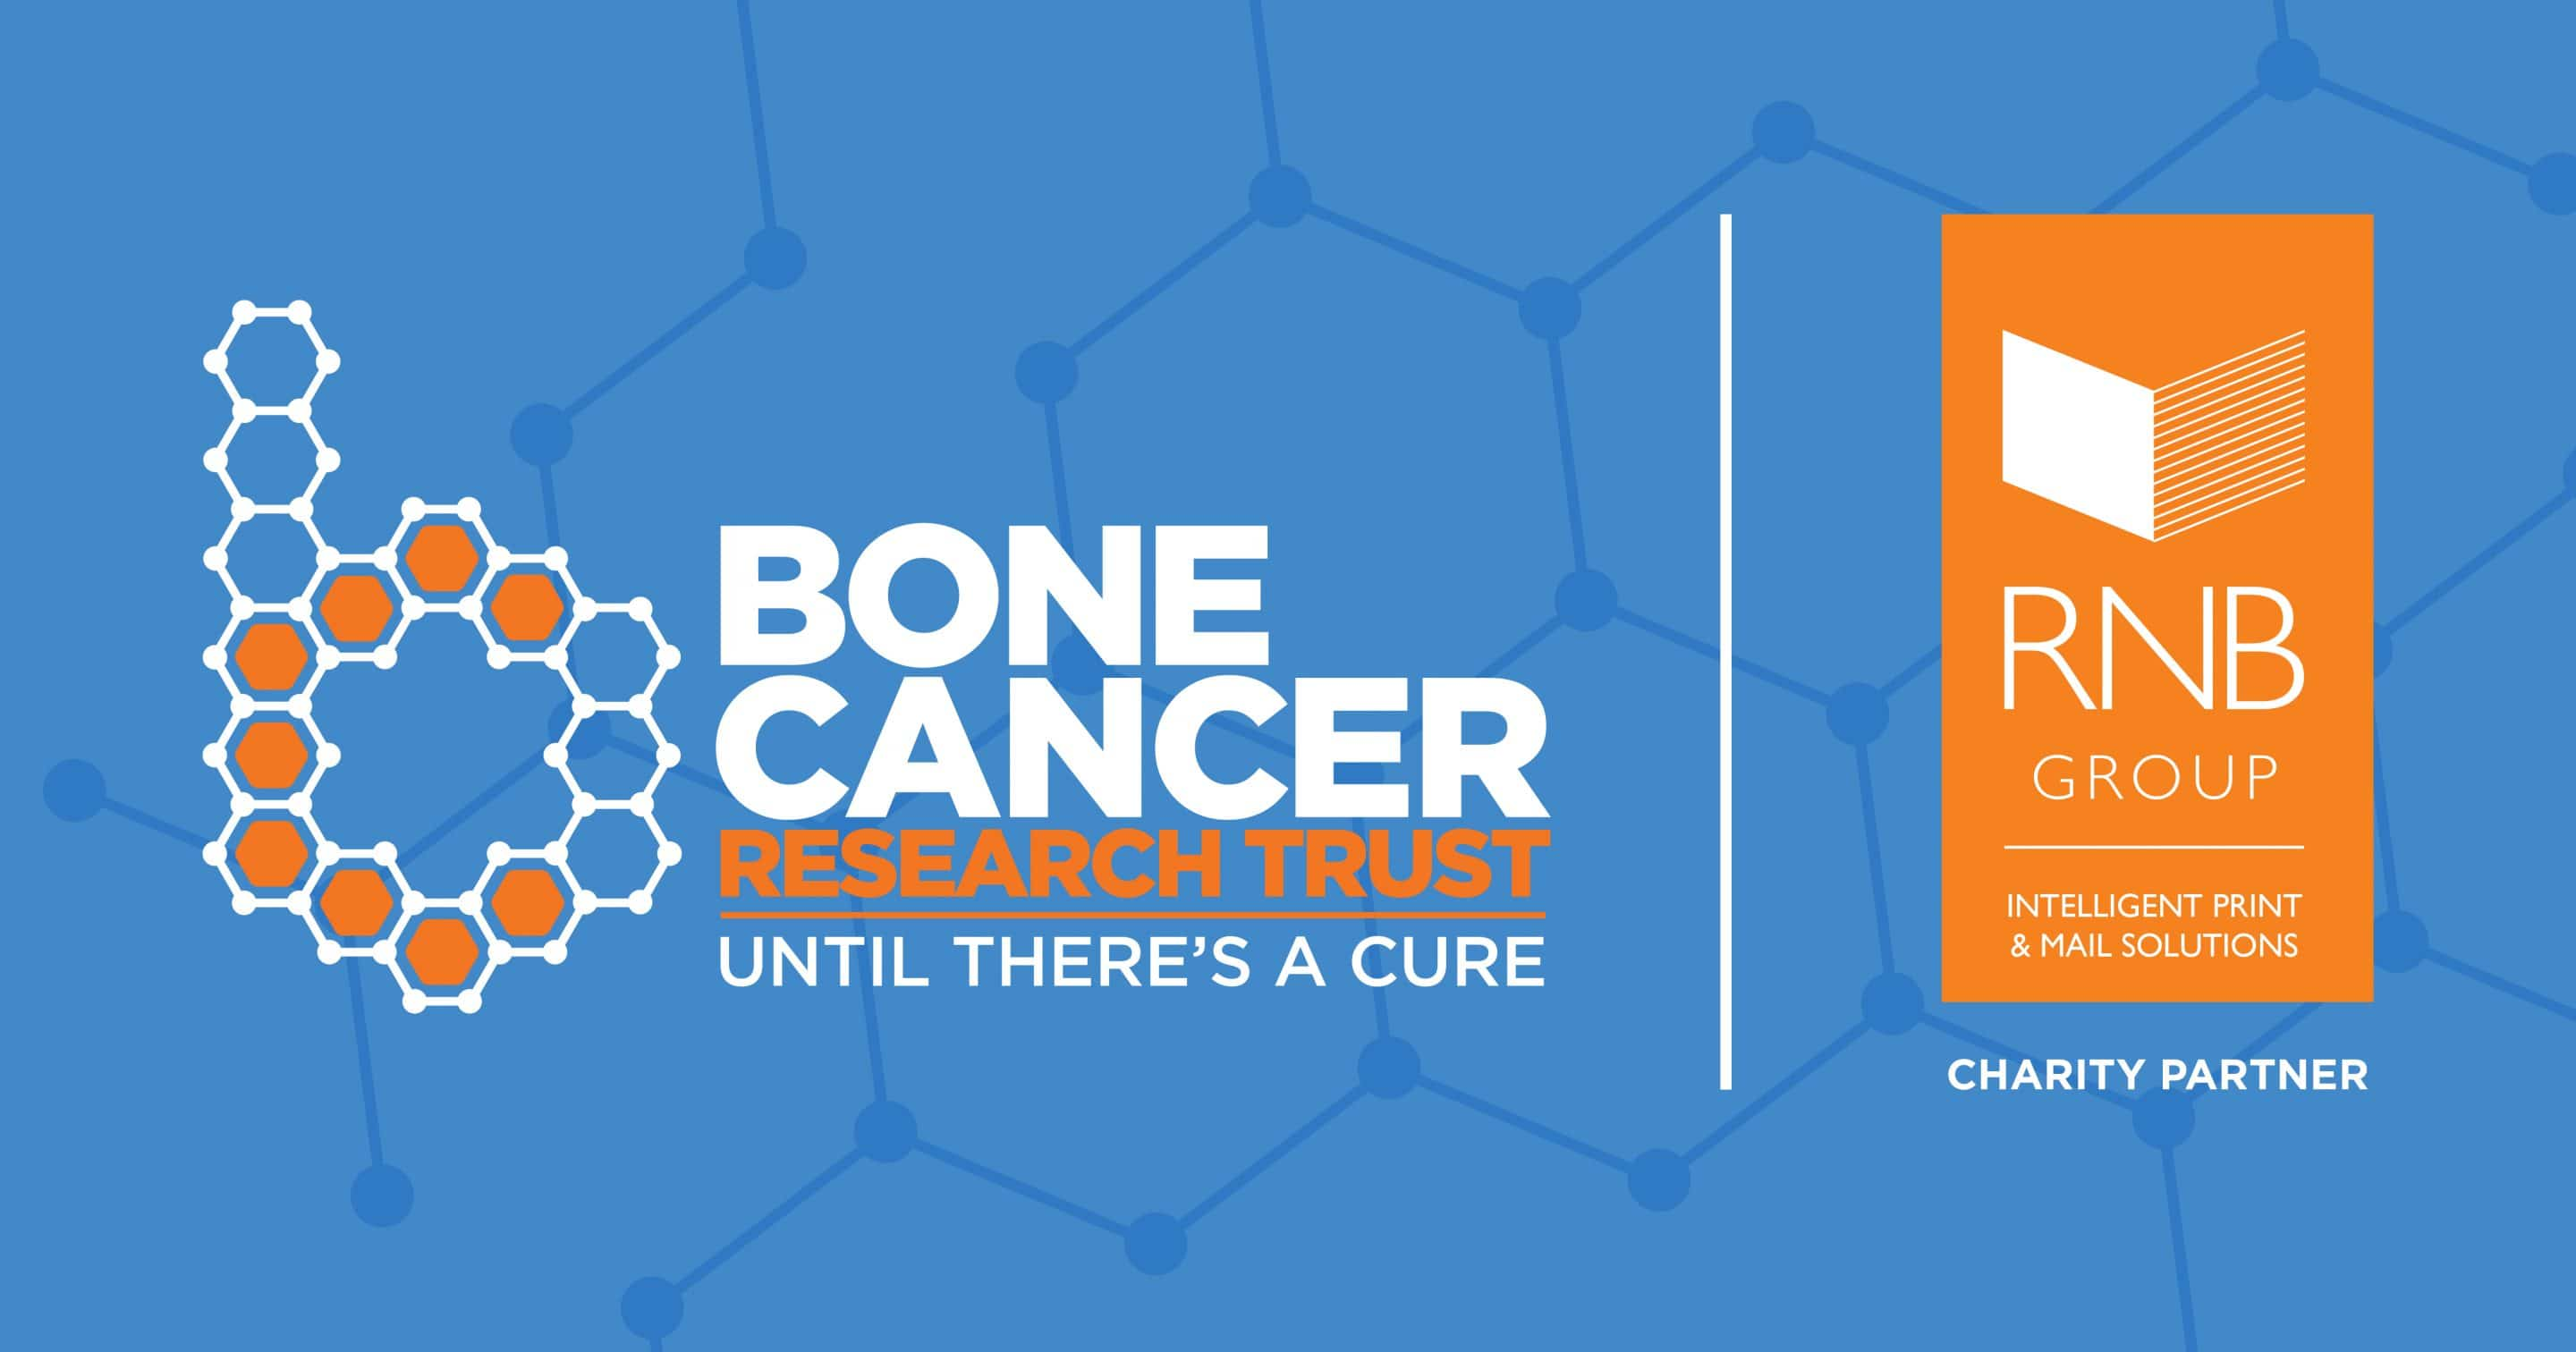 Proud to announce the Bone Cancer Research Trust as our 2019 charity partner